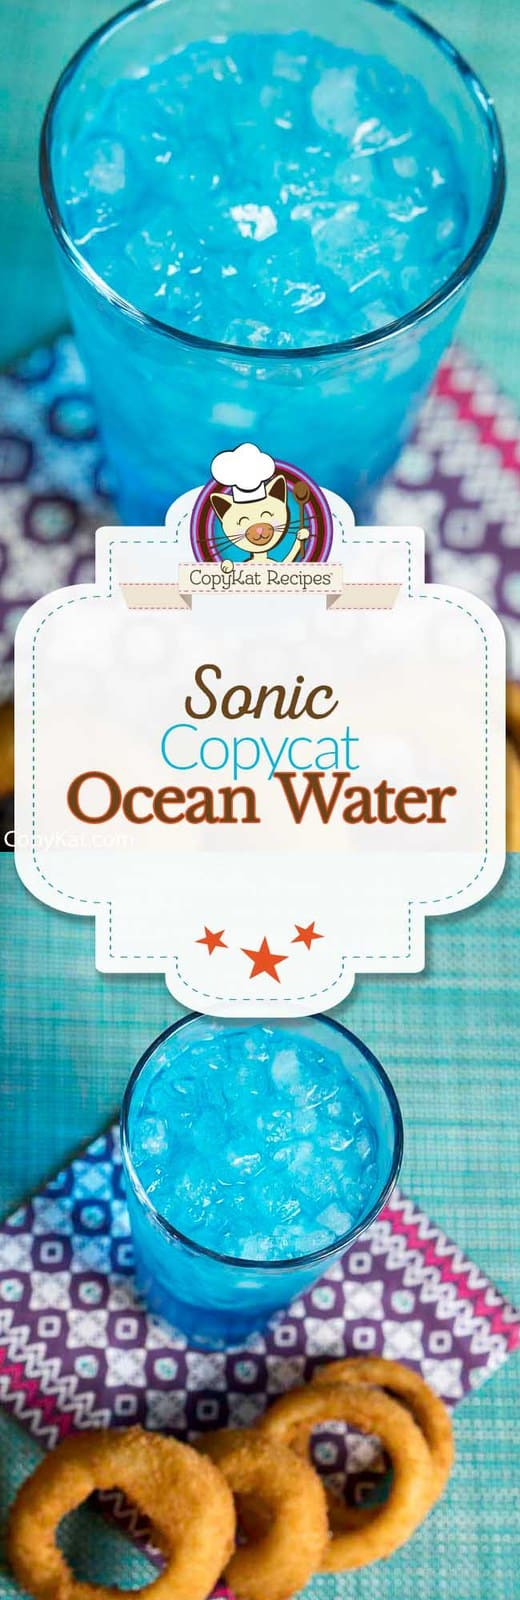 You can recreate the Sonic Ocean Water at home with this easy copycat recipe.